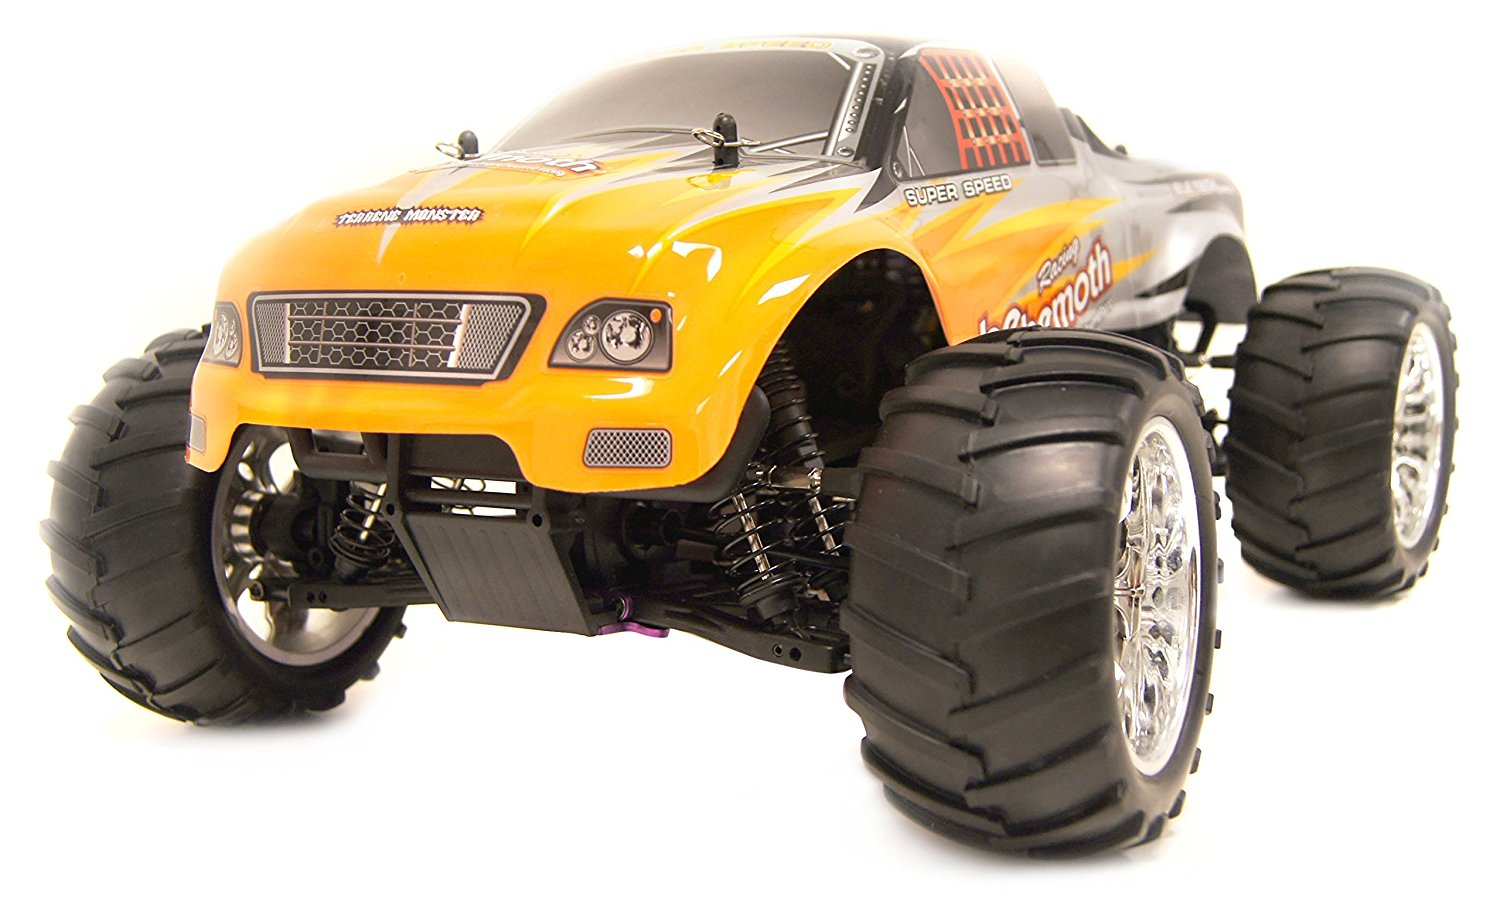 4WD Nitro Powered High Speed Off Road Monster Truck Vertex 18 CXP, Orange 1/10